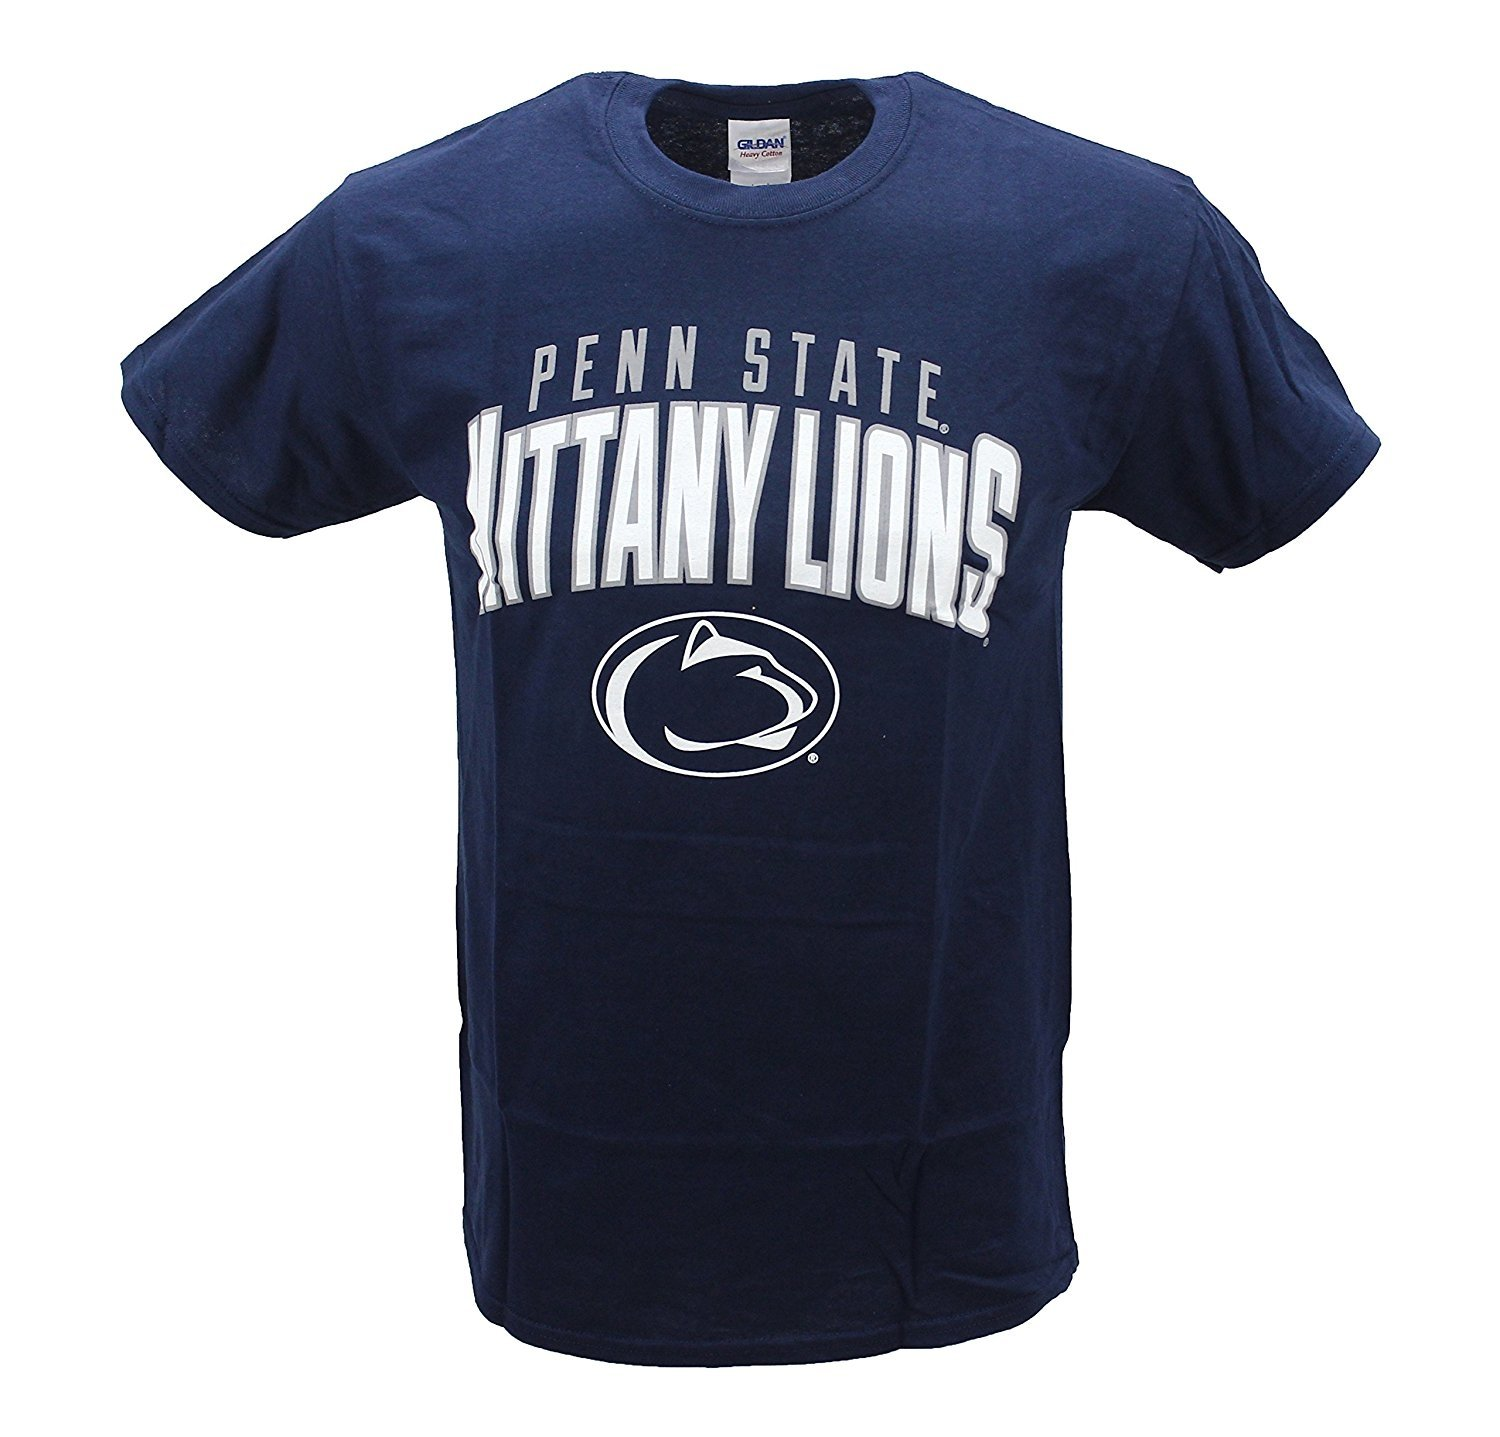 NCAA 4th and 1 Men's Penn State Nittany Lions T Shirt Navy